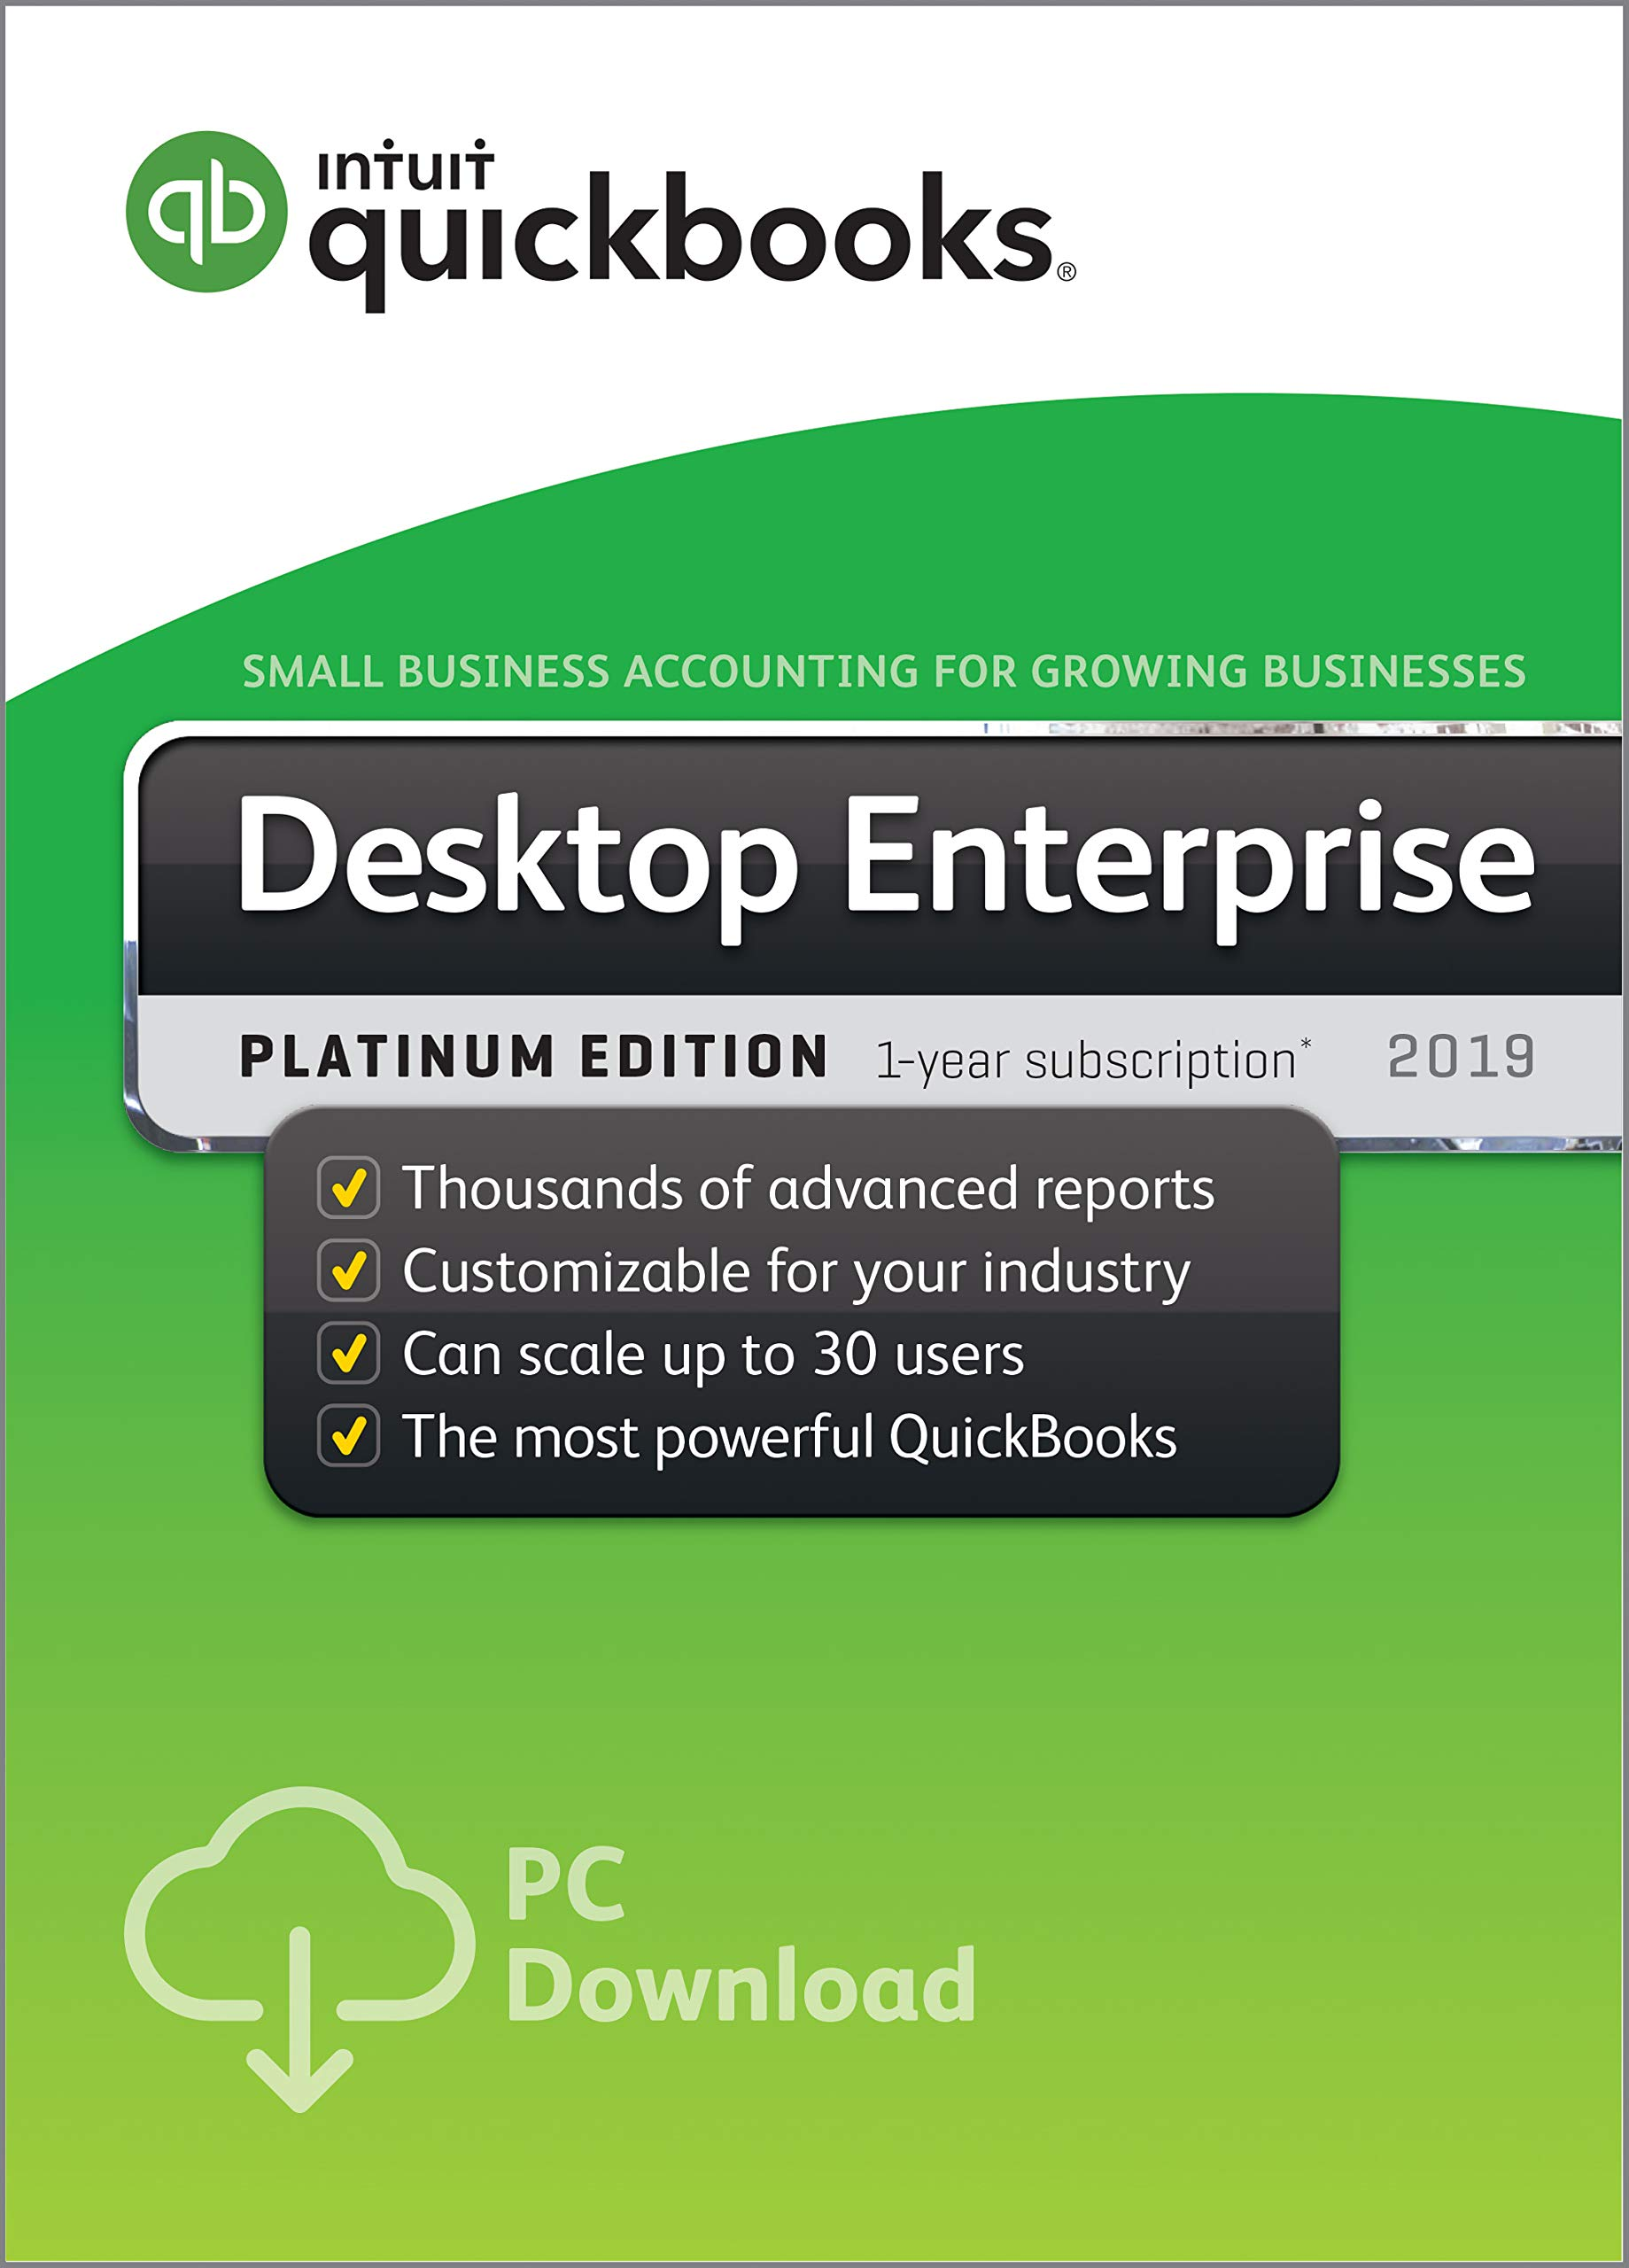 QuickBooks Desktop Enterprise Platinum 2019, 10 User, 1 Year Subscription [PC Download] by Intuit